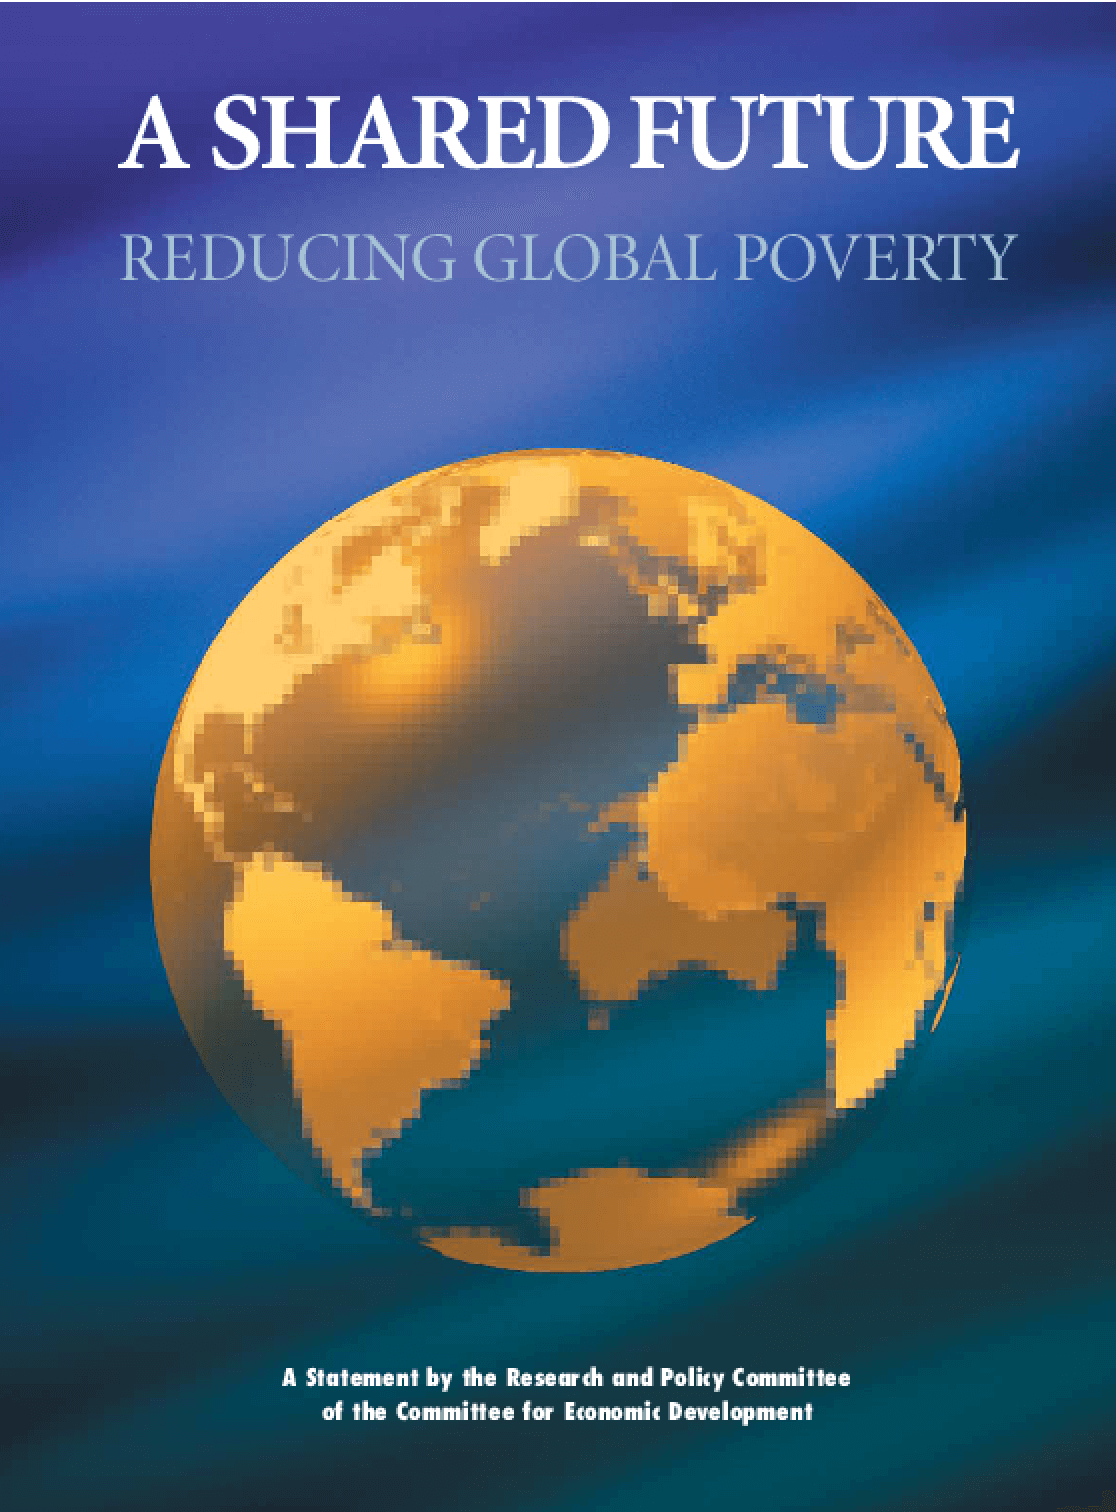 A Shared Future: Reducing Global Poverty